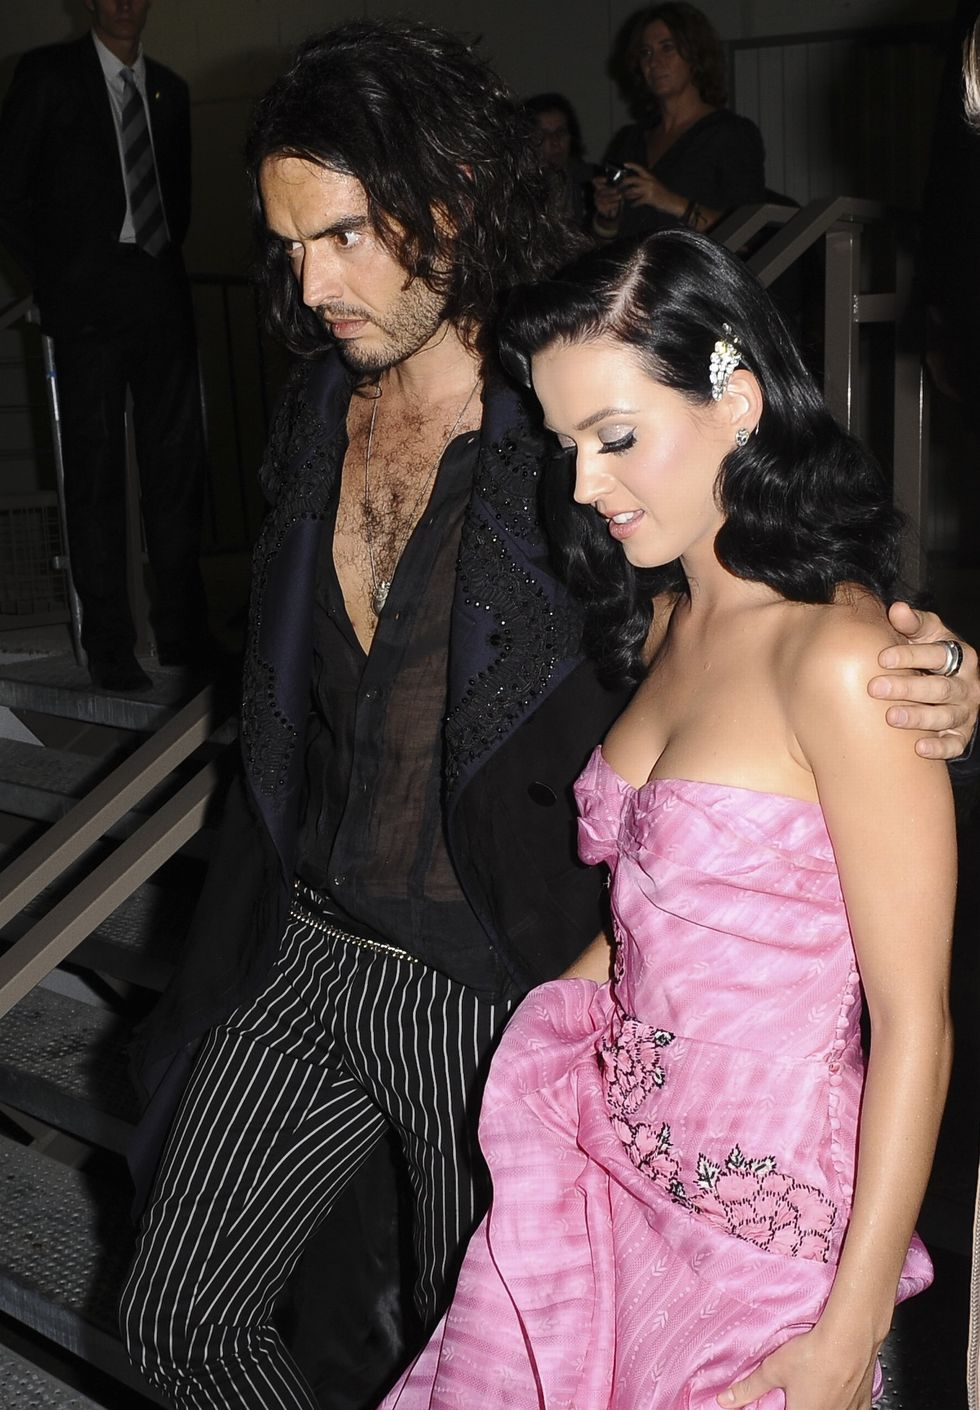 katy-perry-shows-cleavage-at-john-galliano-fashion-show-05